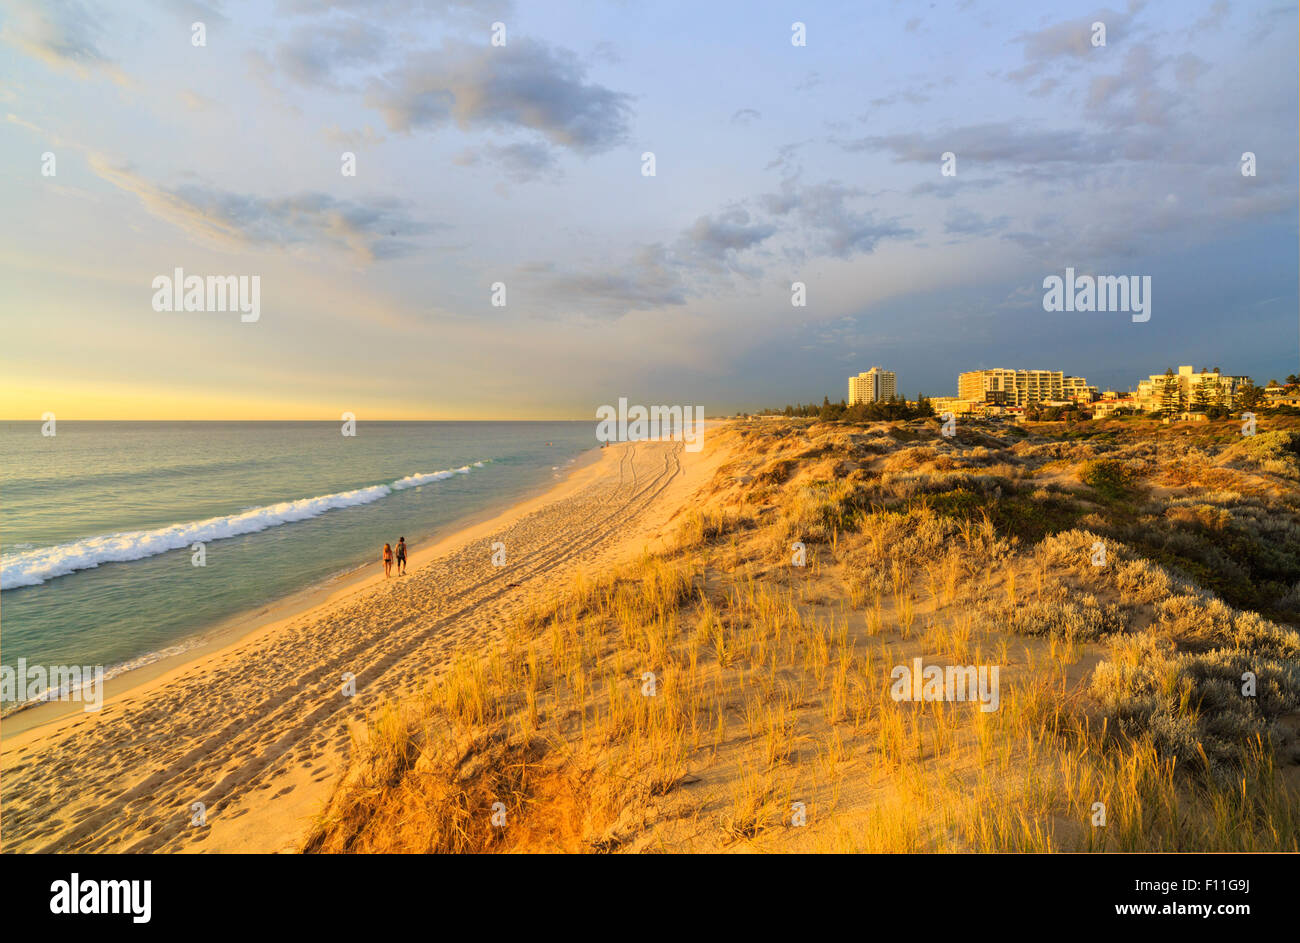 A couple walking along Scarborough Beach in the late afternoon summer sun. Perth, Western Australia - Stock Image